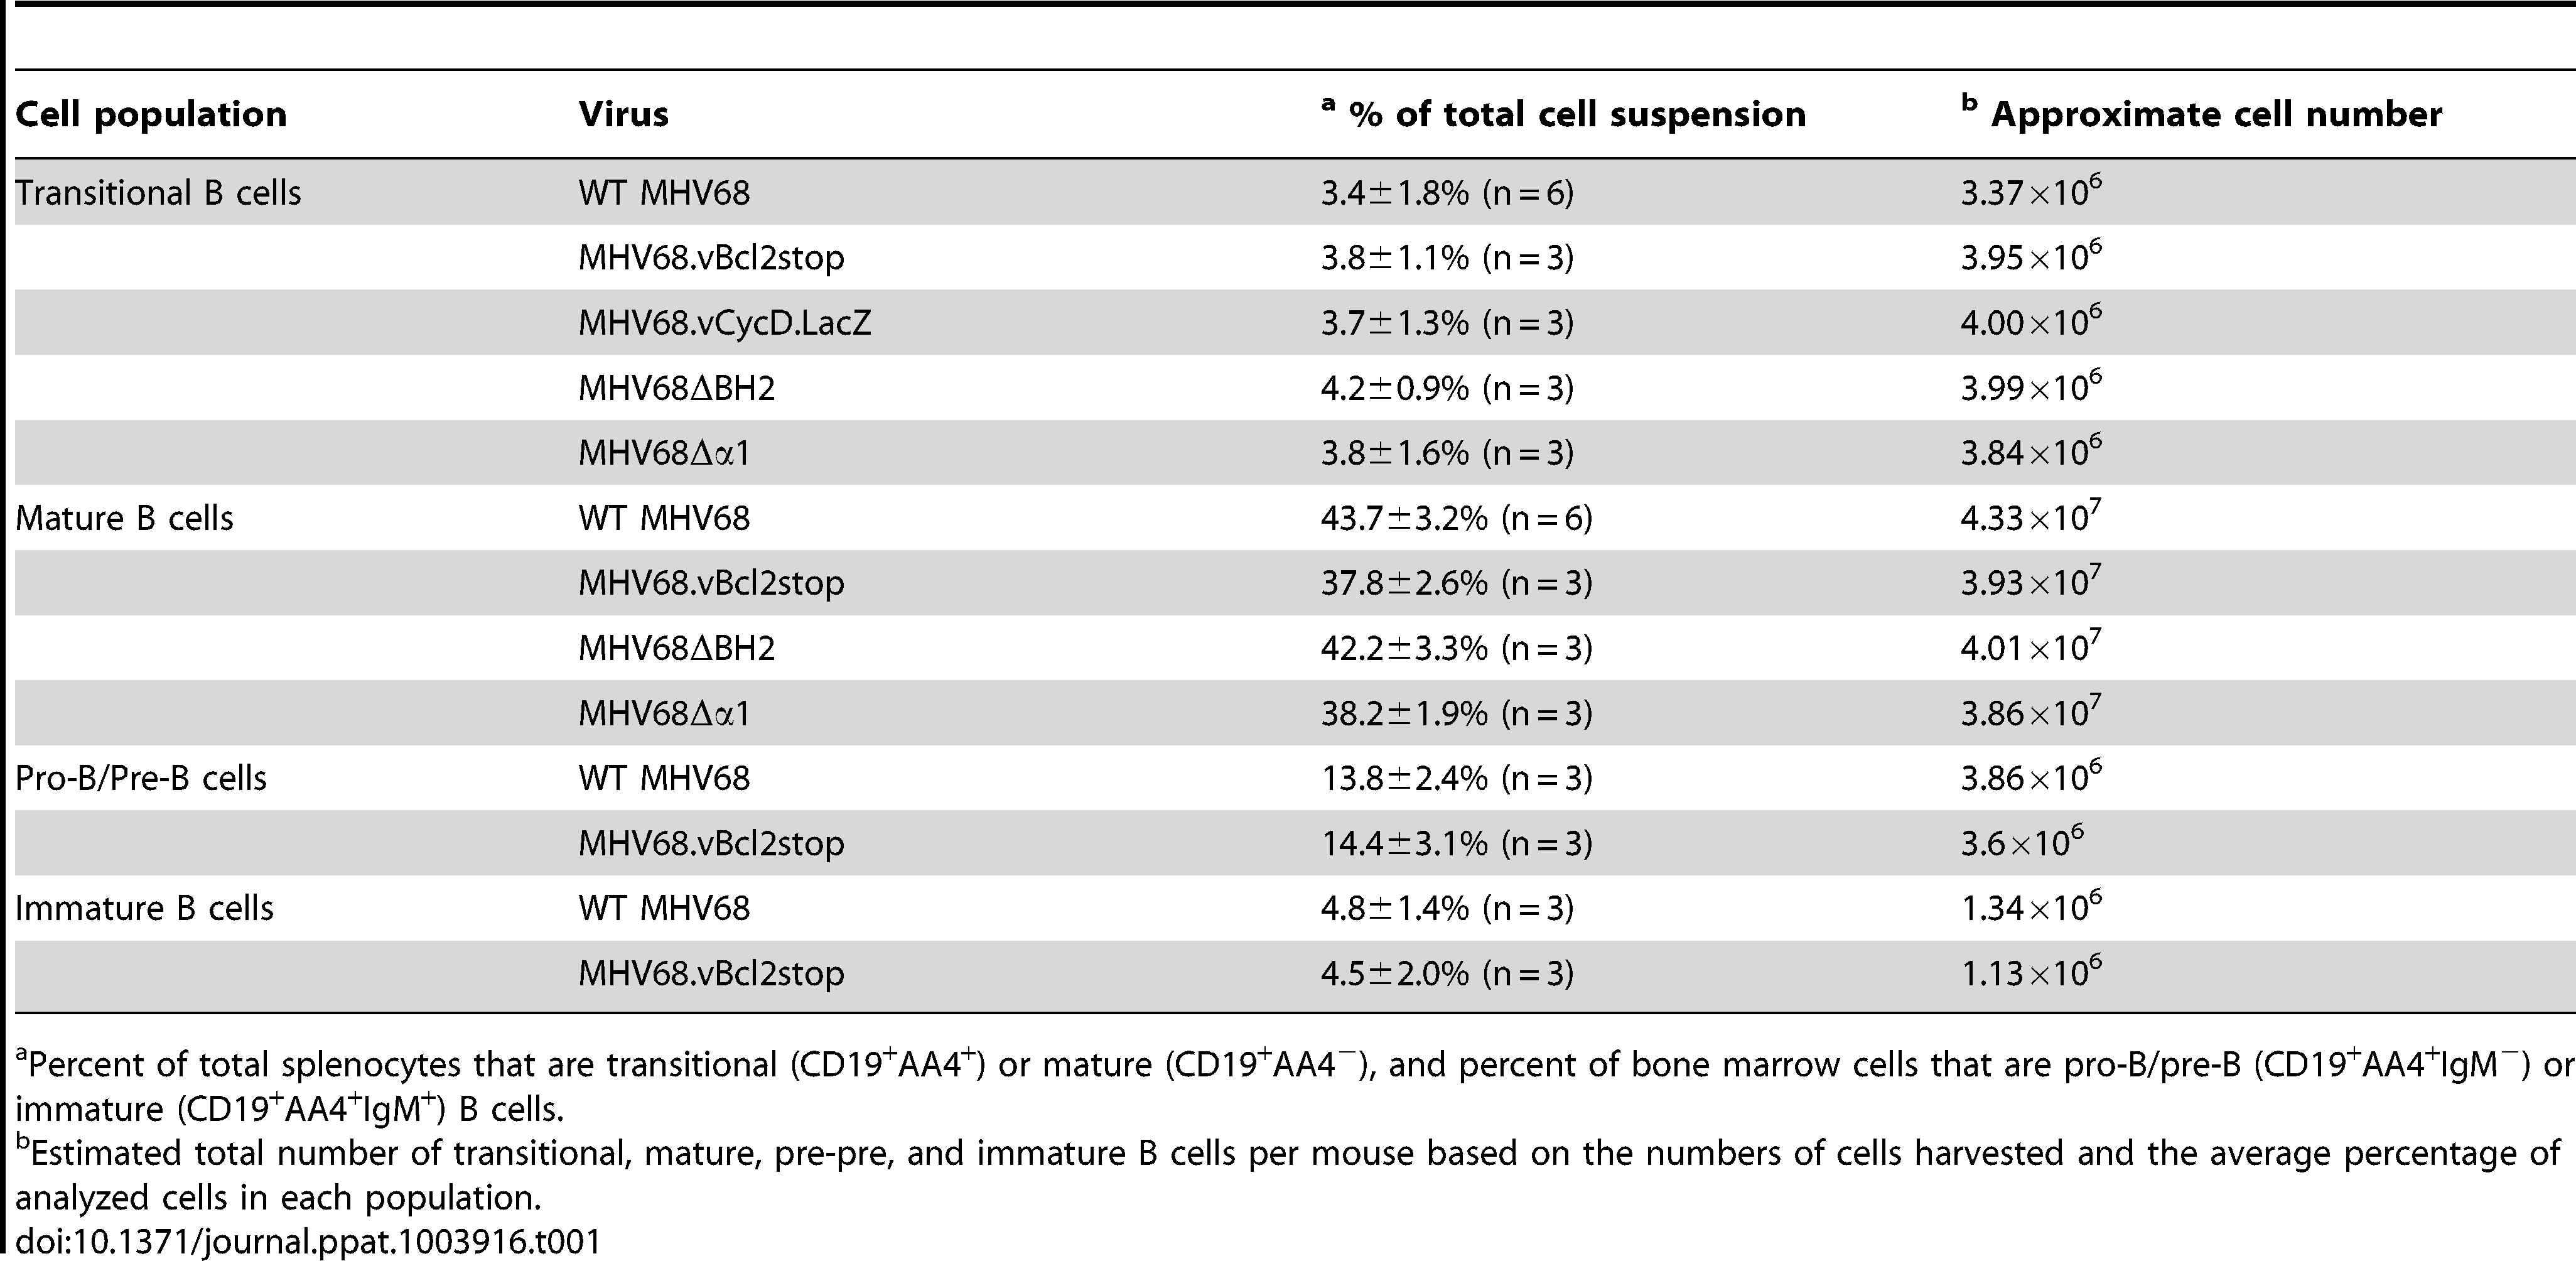 Percentages and approximate number of B cell populations following infection with wild-type and MHV68 mutant viruses.